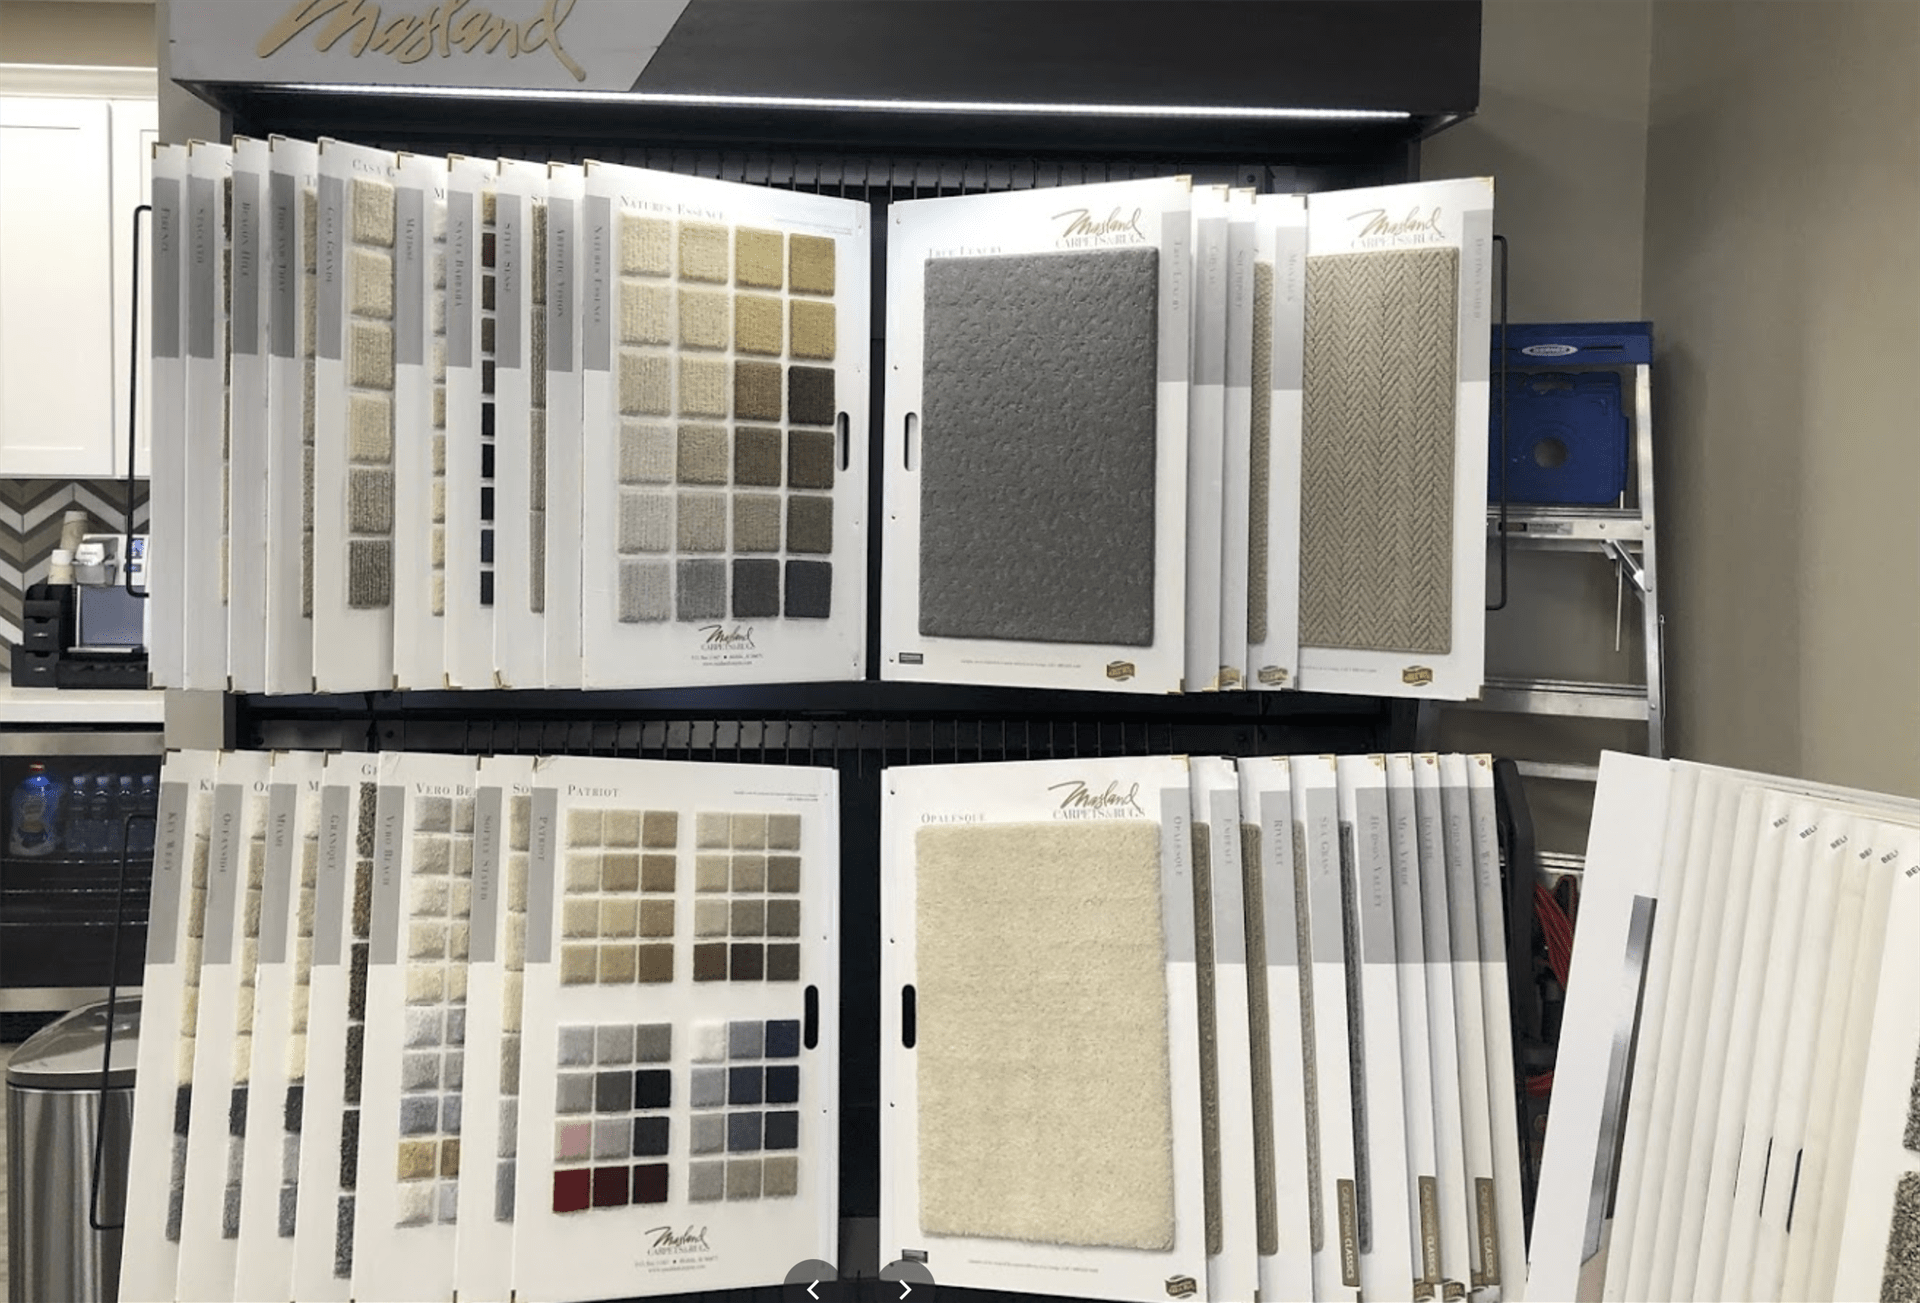 Masland carpets at Floor Source in Scottsdale, AZ